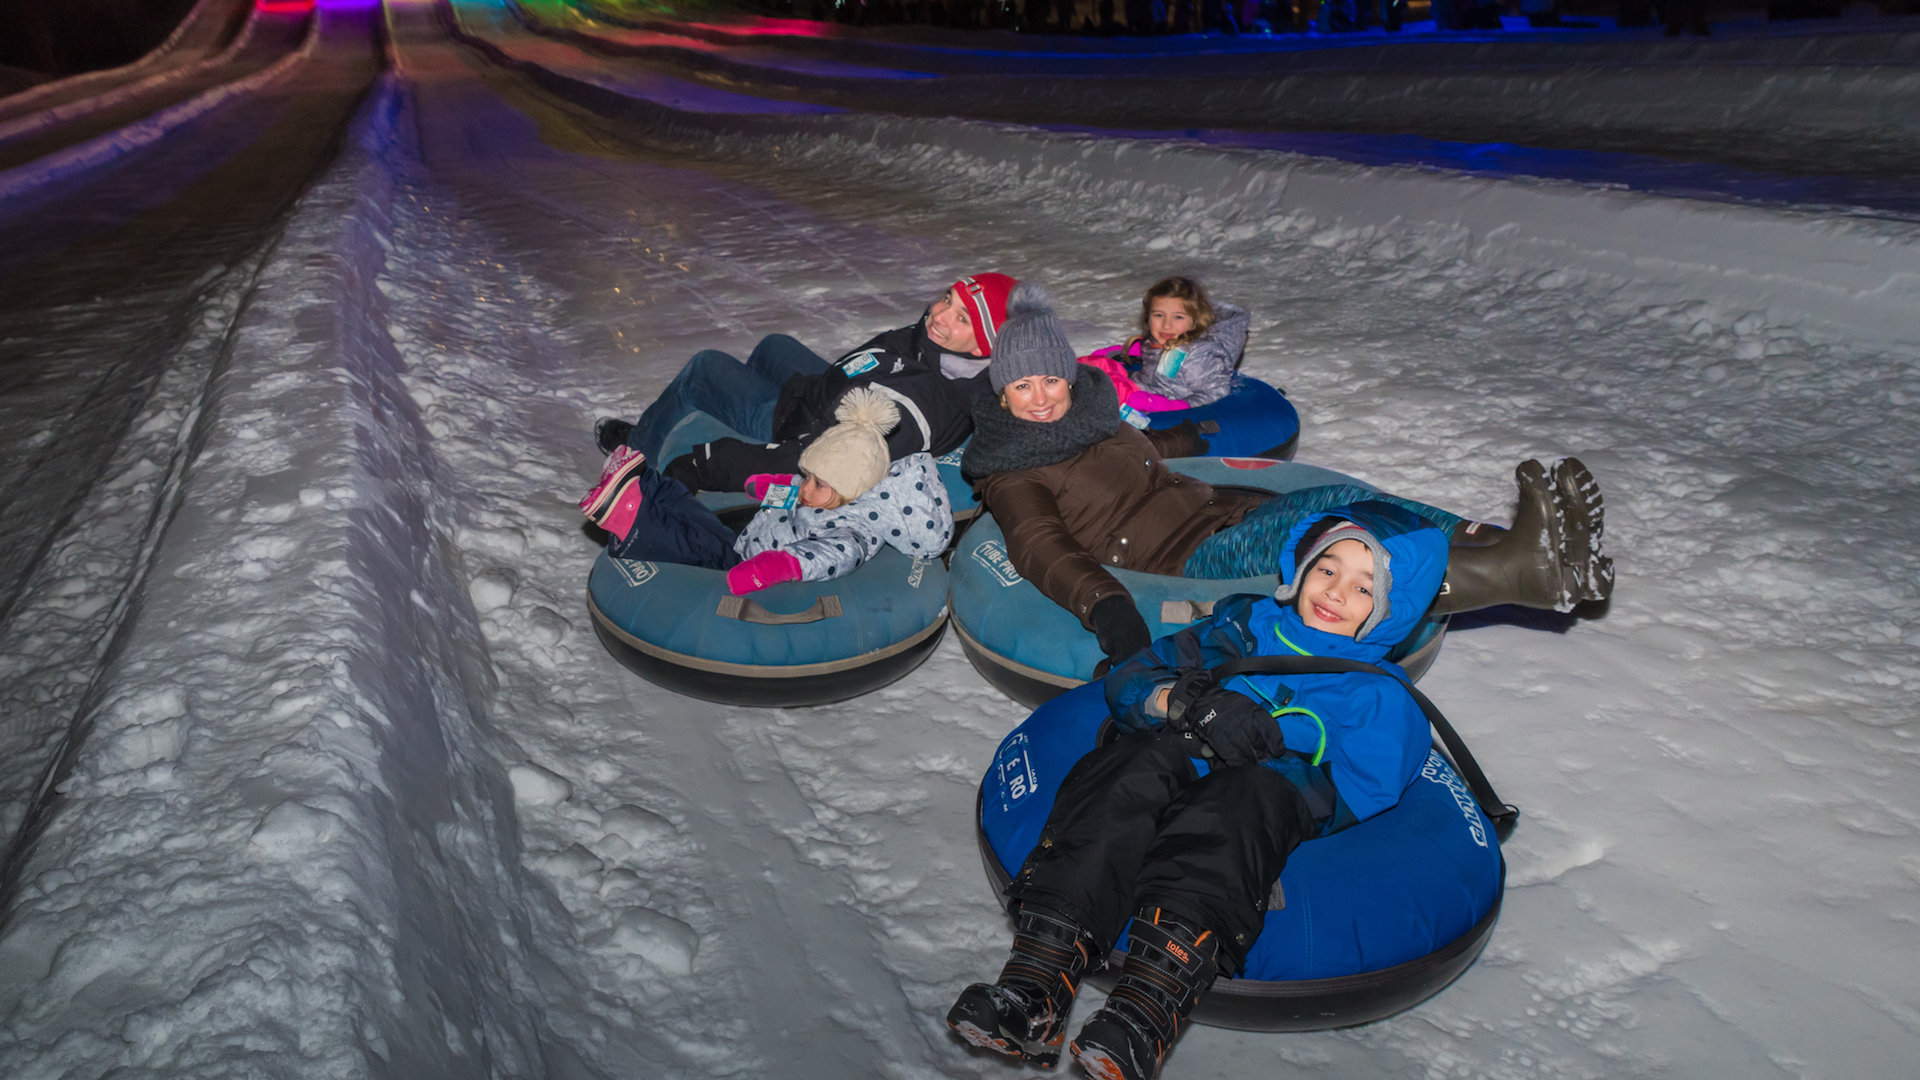 New Year's Eve Tubing Special at Vertical Descent Tubing Park at Snow Trails